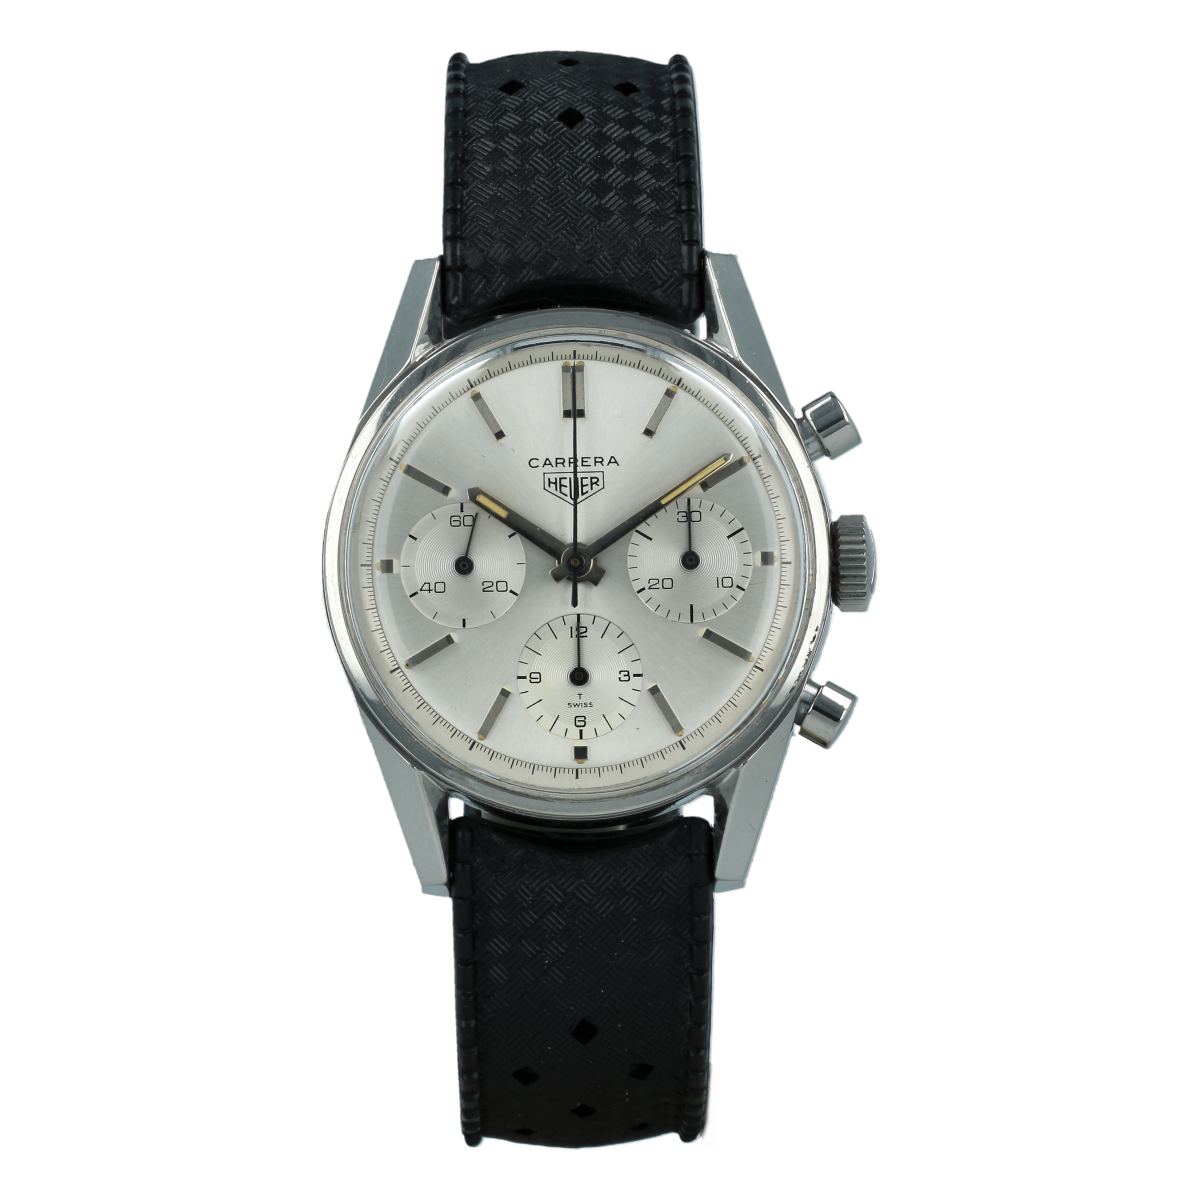 Heuer Carrera 2447S 1st Execution (1964/1965) | Buy pre-owned Heuer